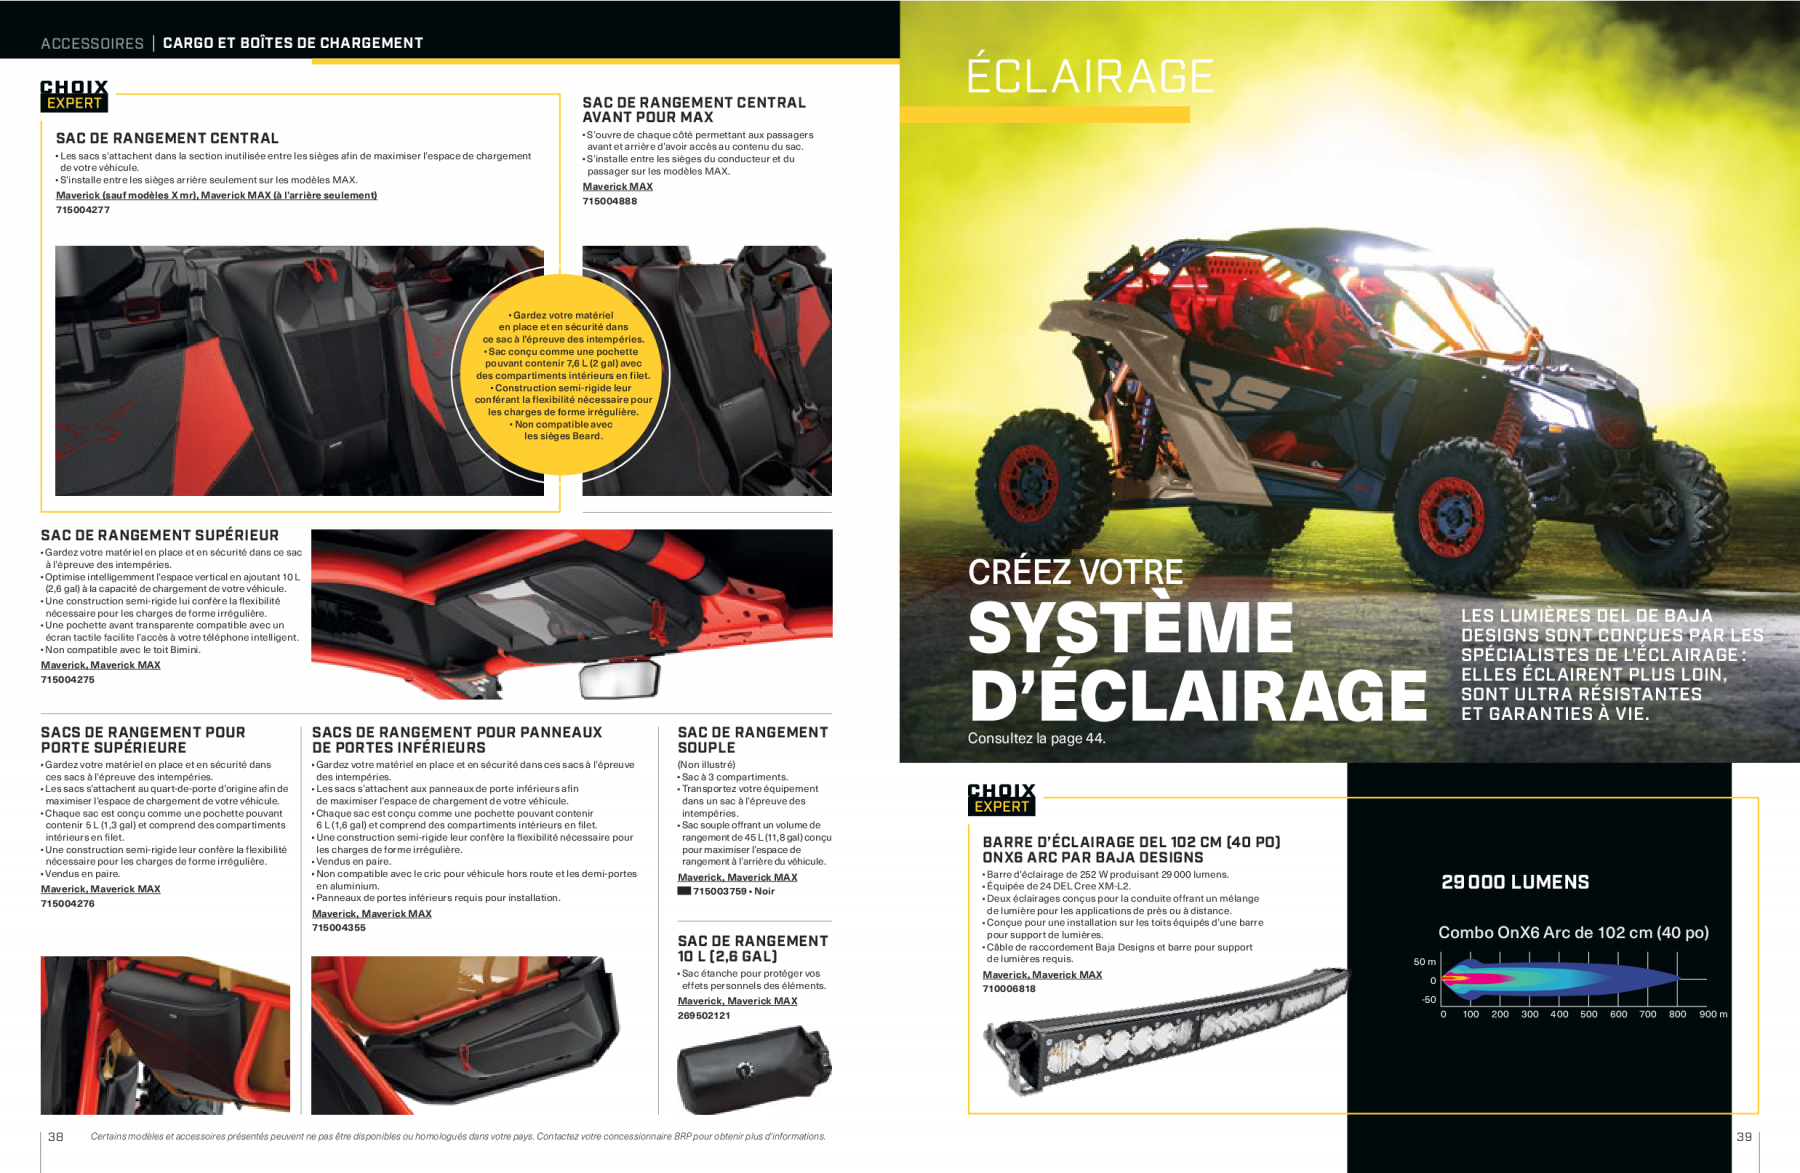 catalogue-accessoires-can-am-off-road-2021-maverick-X20